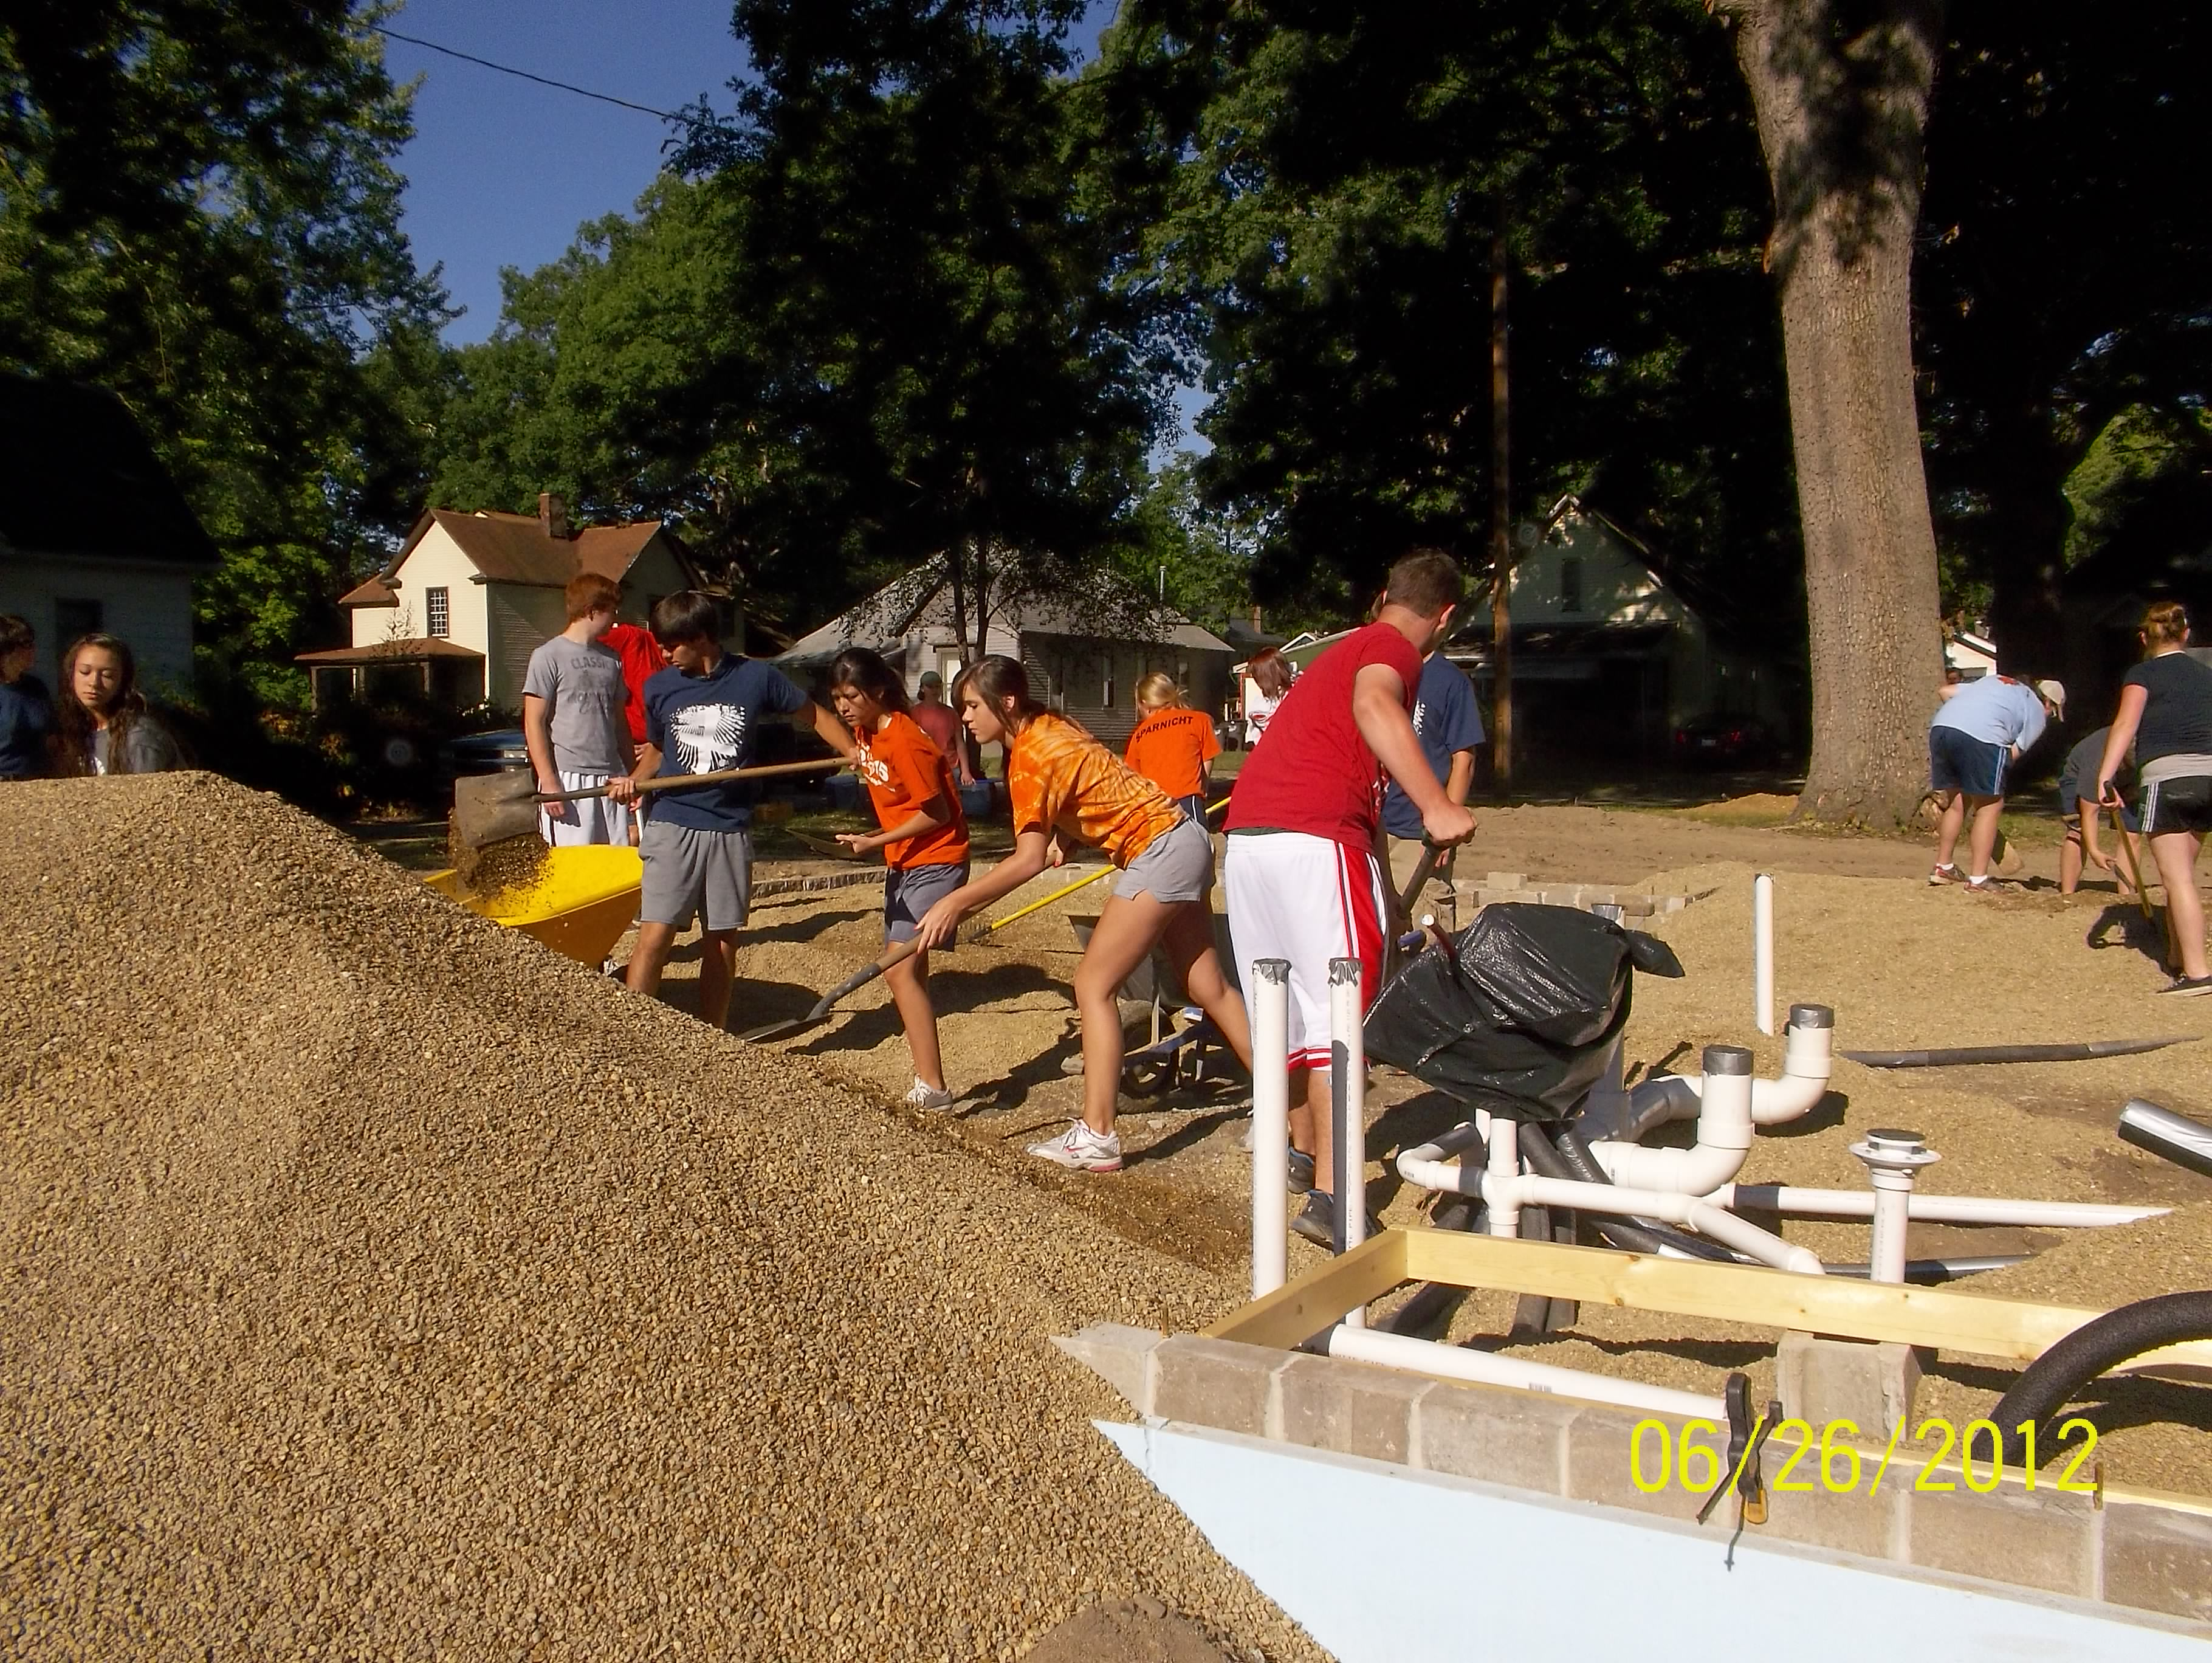 The Life Church One-eighty group spread pea gravel